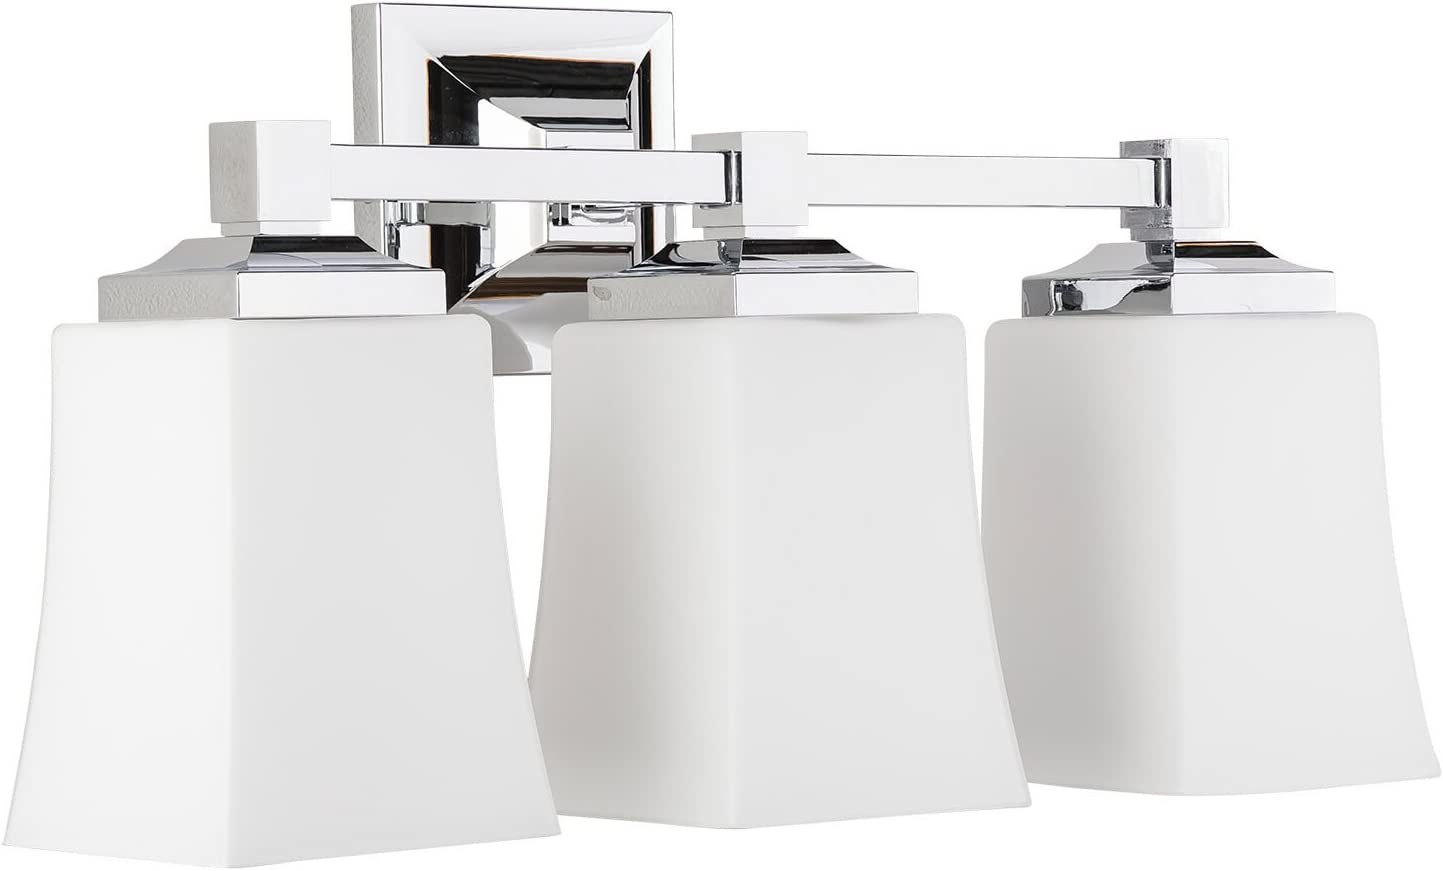 Brighton 3 Light Bathroom Vanity Fixture Chrome w Frosted Glass Linea di Liara LL-WL240-3-PC